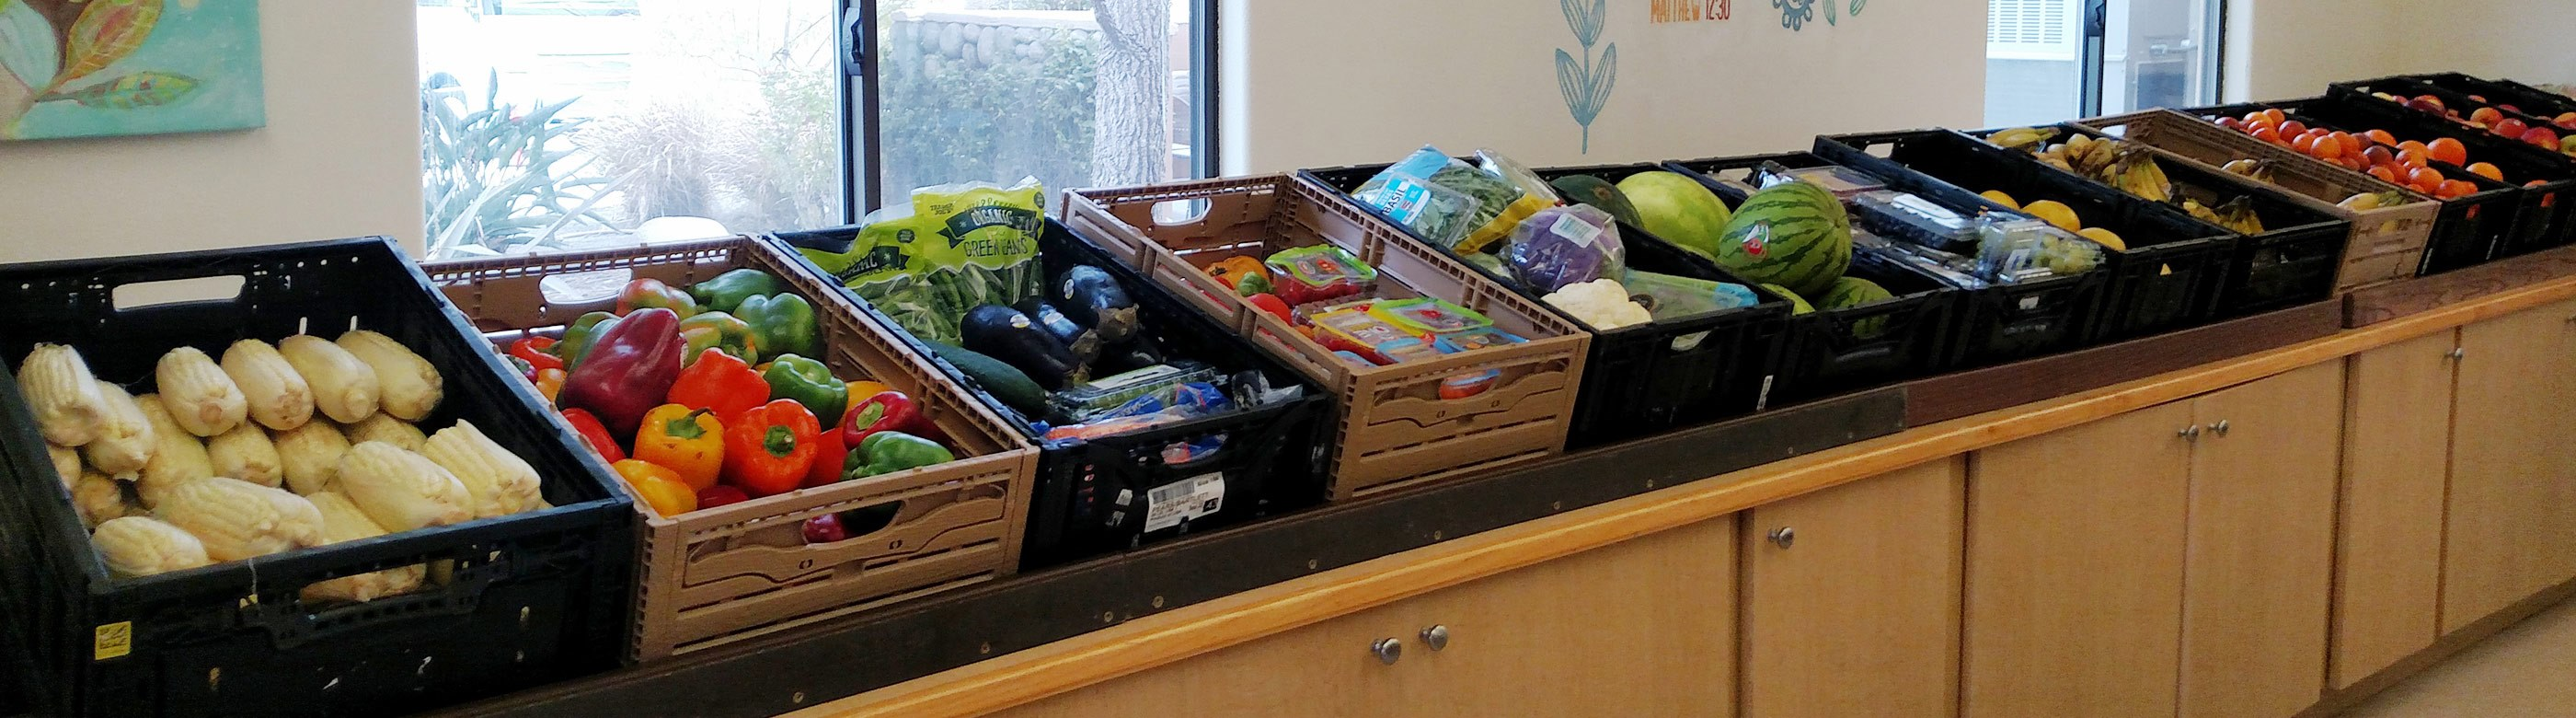 Food Pantry Near Me Open Today